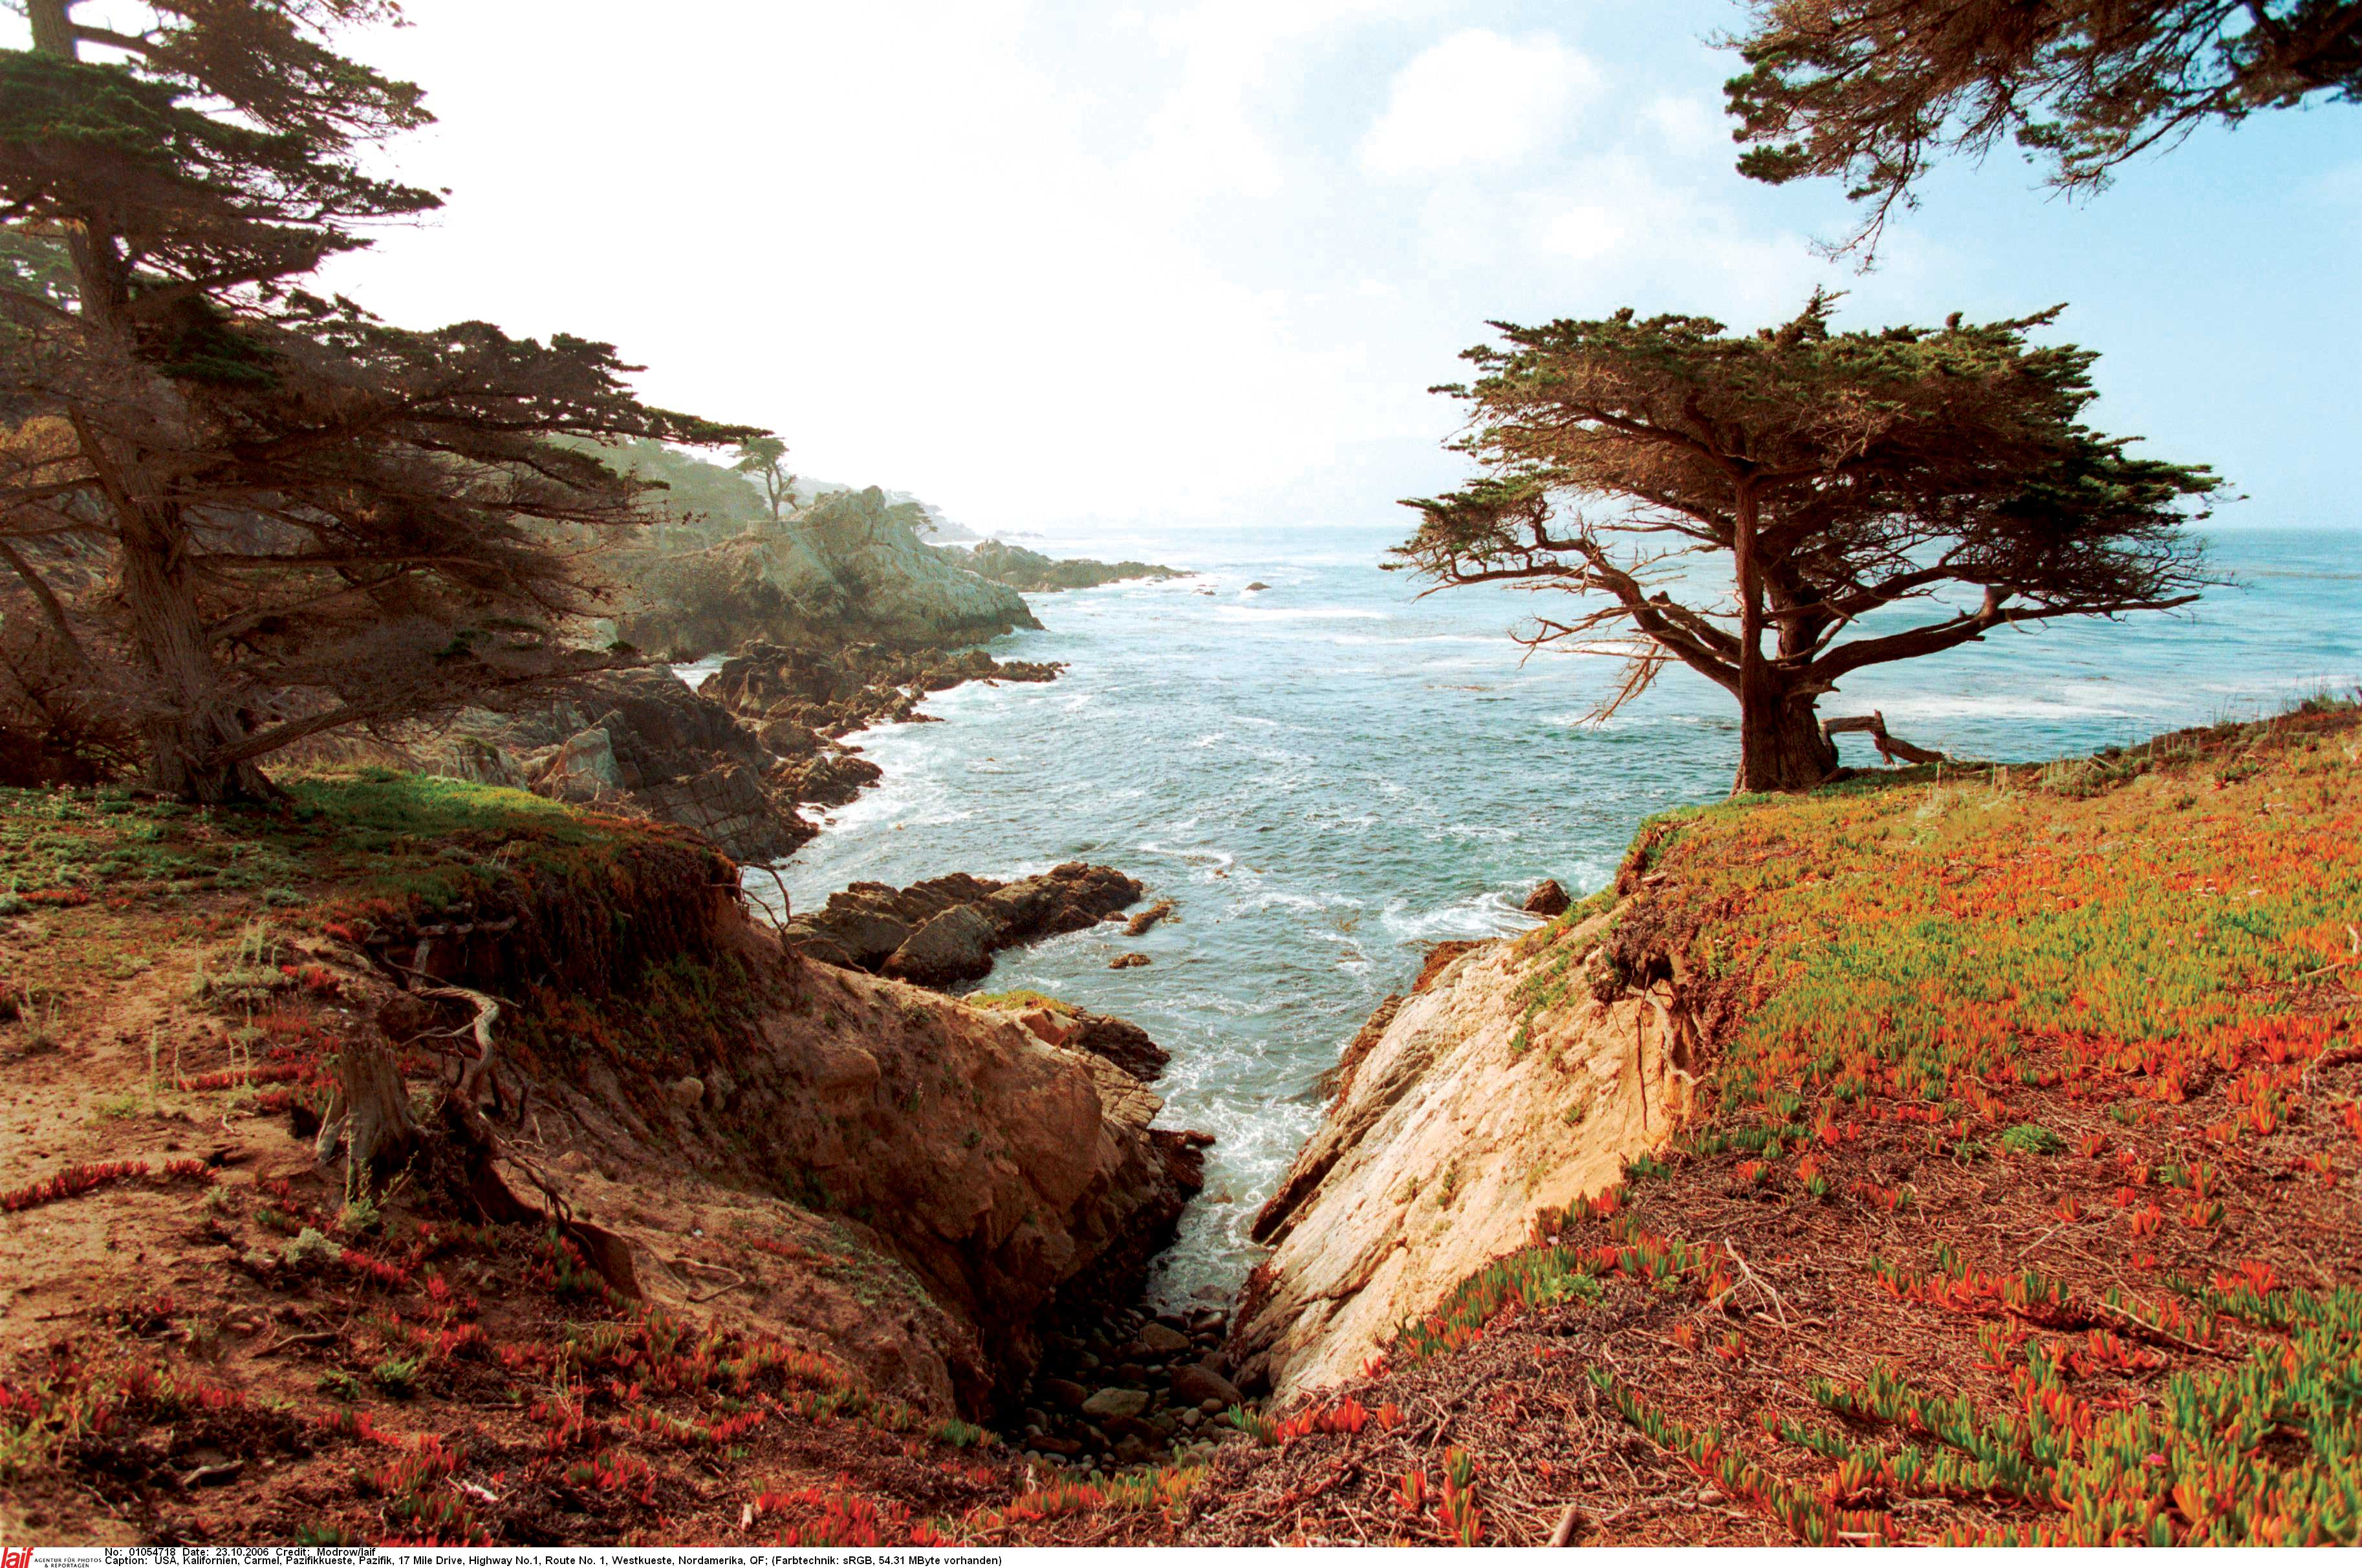 Worlds Best Cities For Romance CNN Travel - 7 unforgettable backdrops on californias 17 mile drive